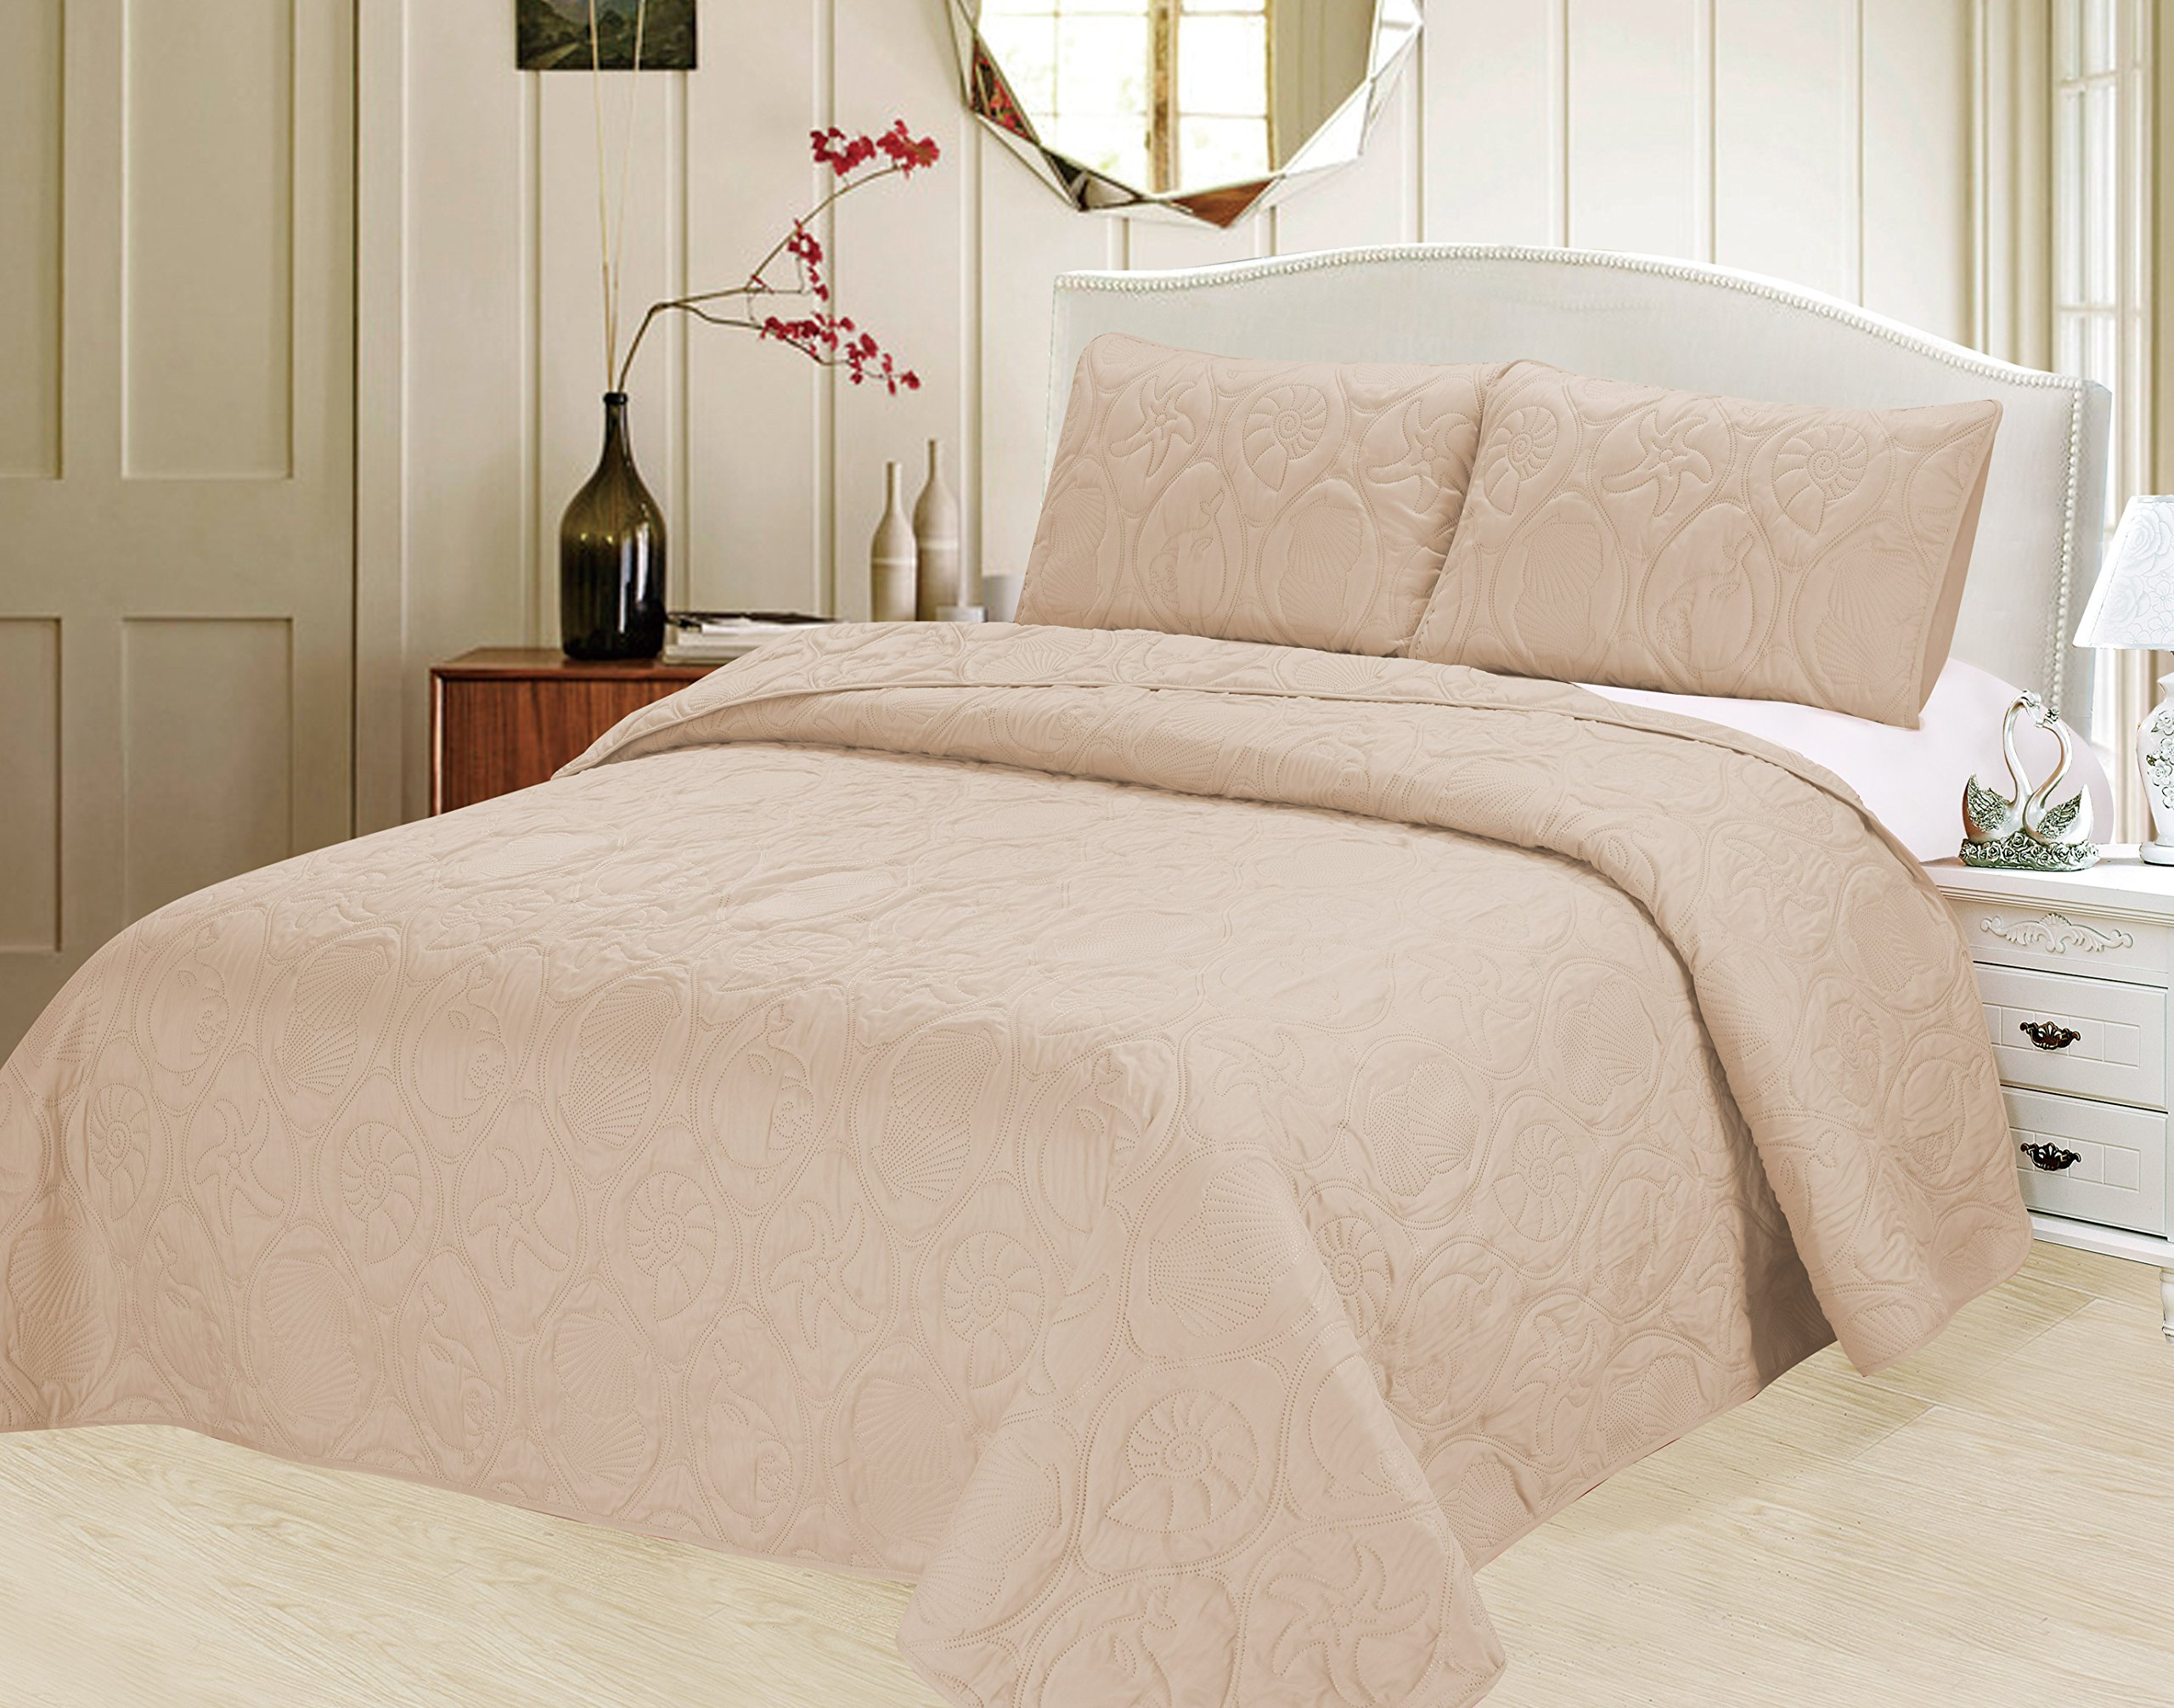 Verno Ocean Star Oversized Bedspread Set with Shams (Ivory, Full) by Verno